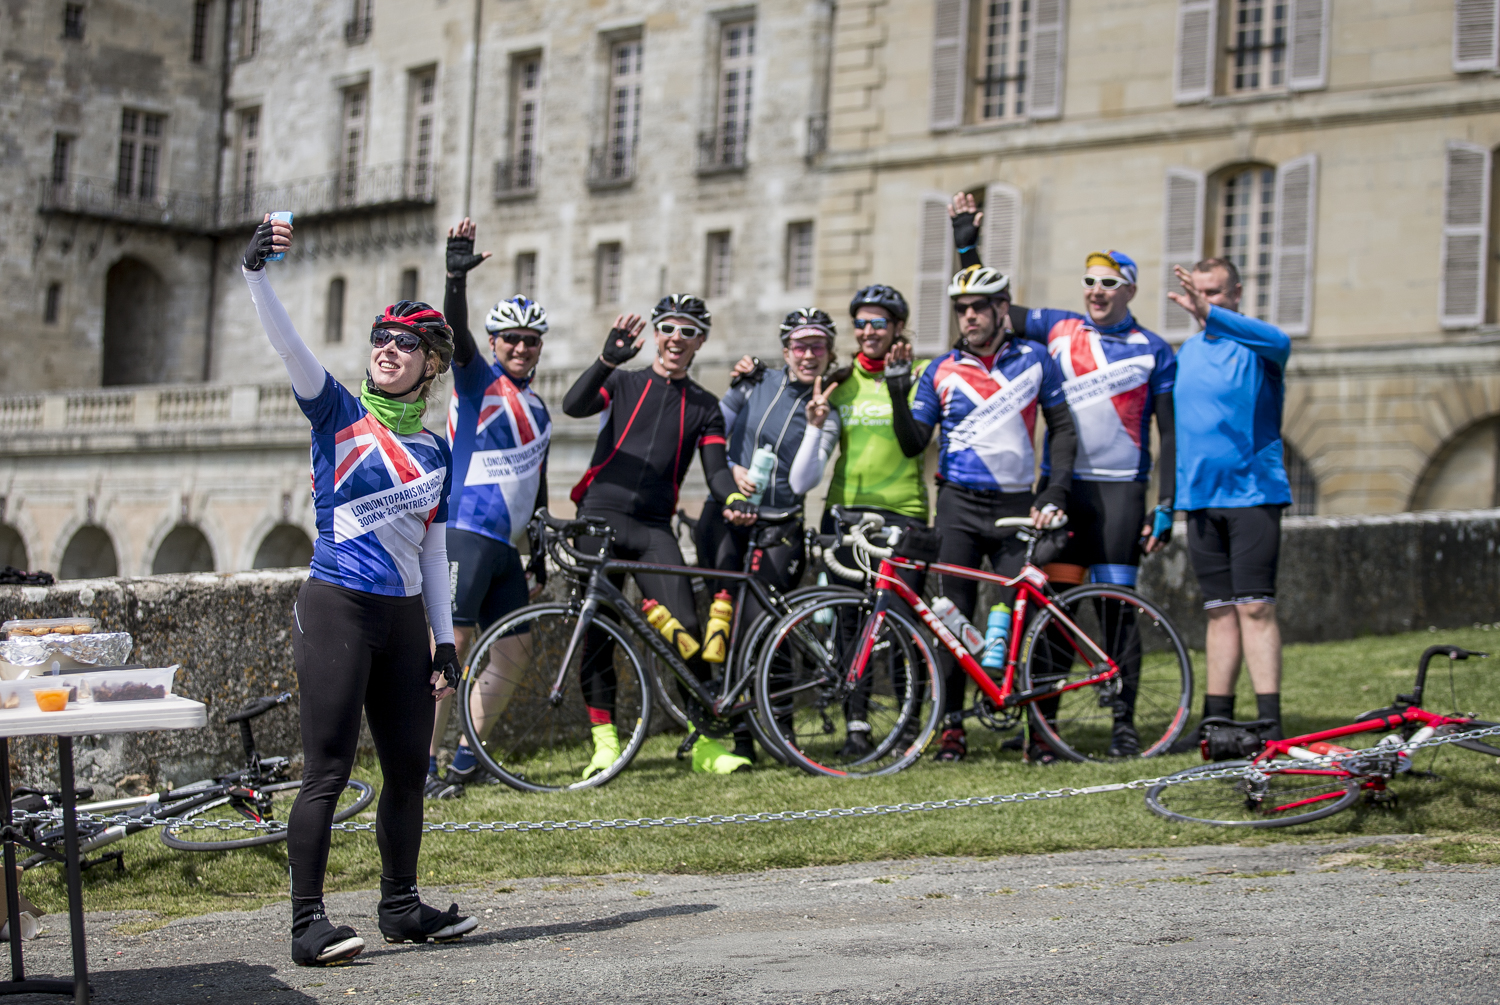 London 2 Paris 24hr cycle sportive.